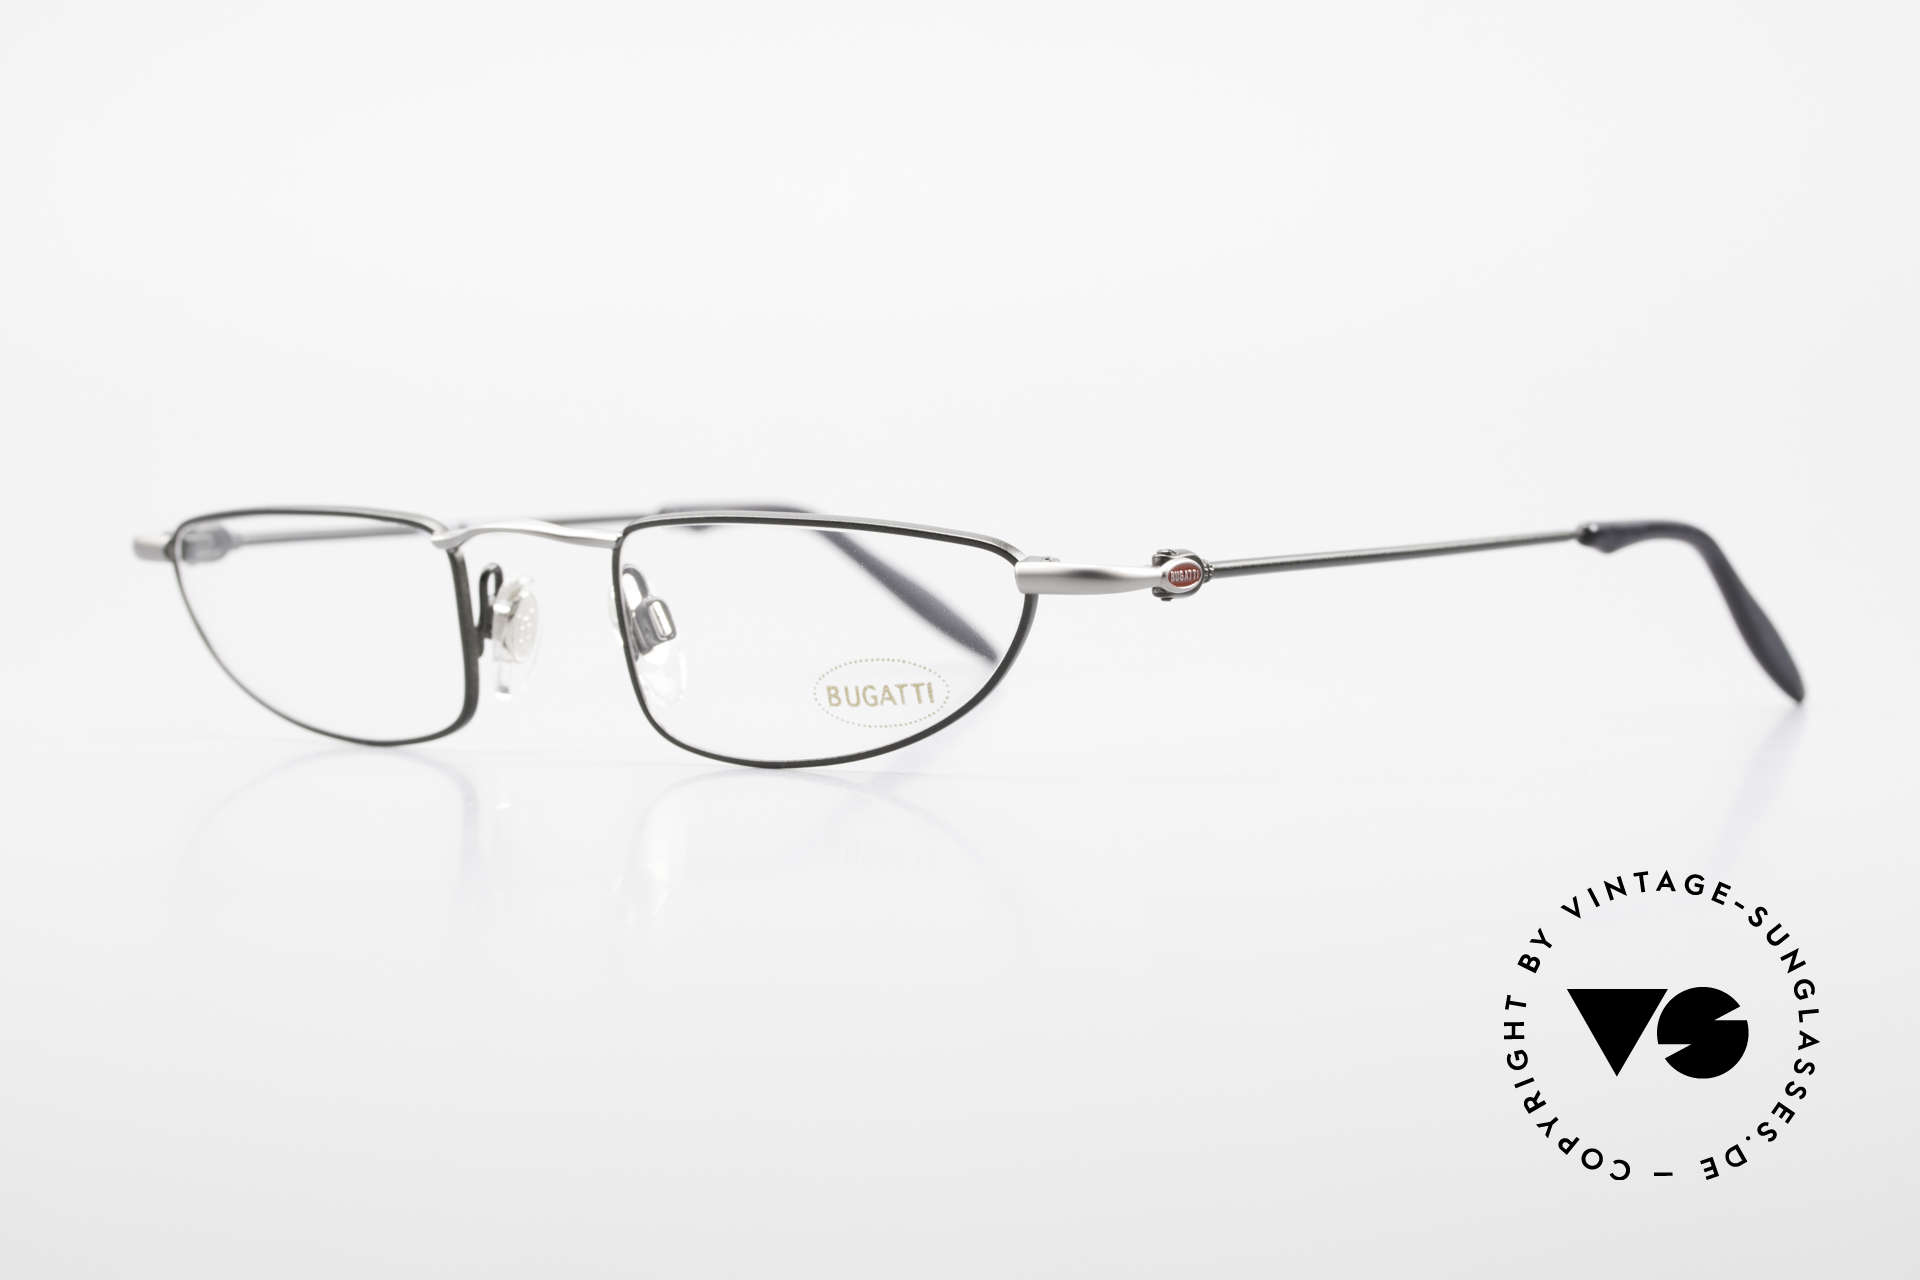 Bugatti 11729 Striking 90'S Reading Glasses, a noble ORIGINAL by Bugatti from the early 1990's, Made for Men